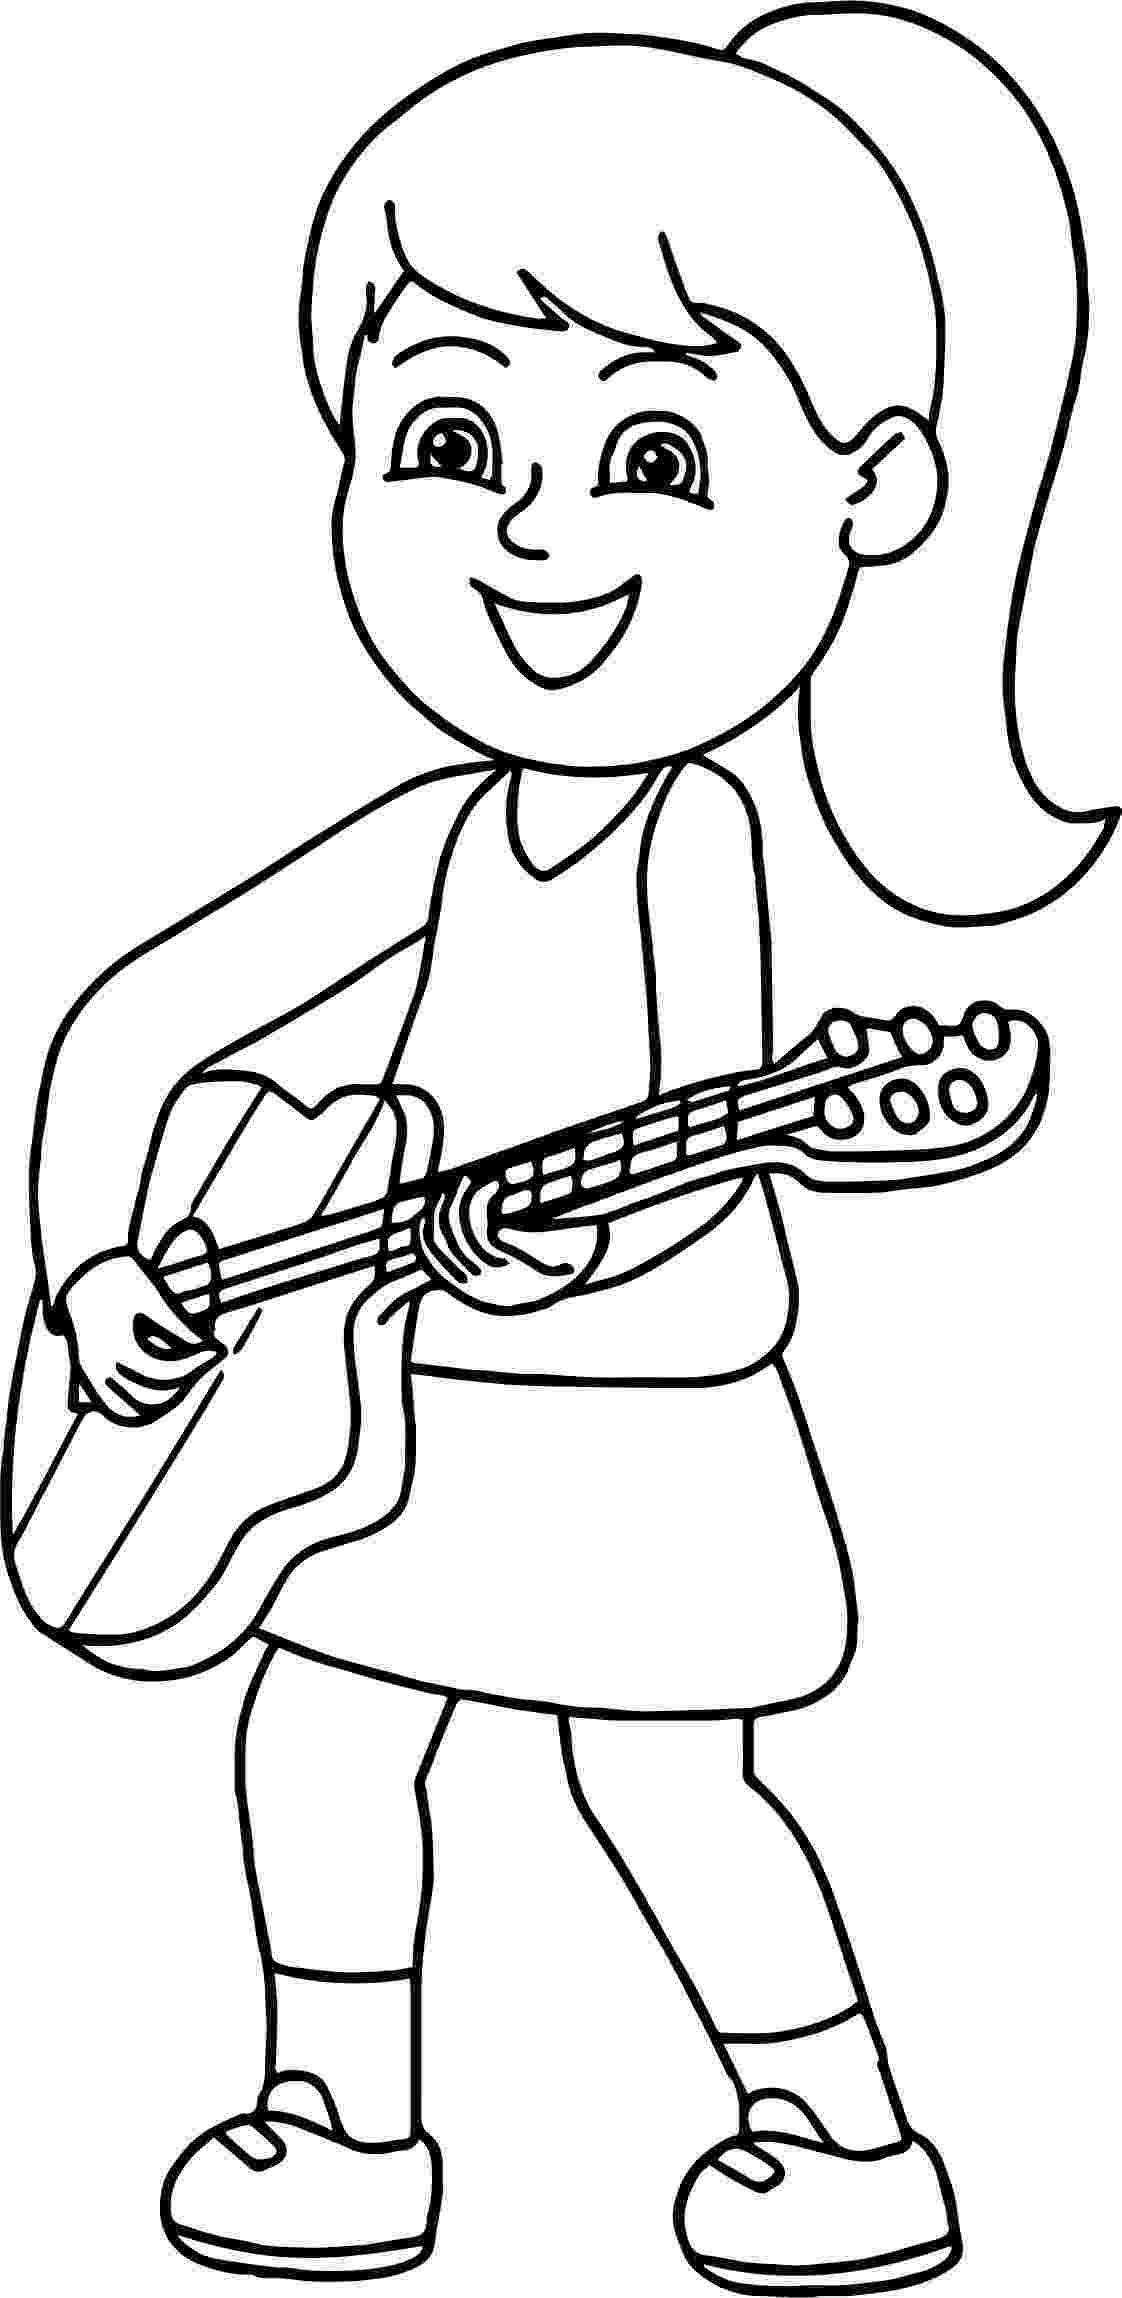 cool guitar coloring pages amazing acoustic guitar printables wood guitars free coloring pages cool guitar